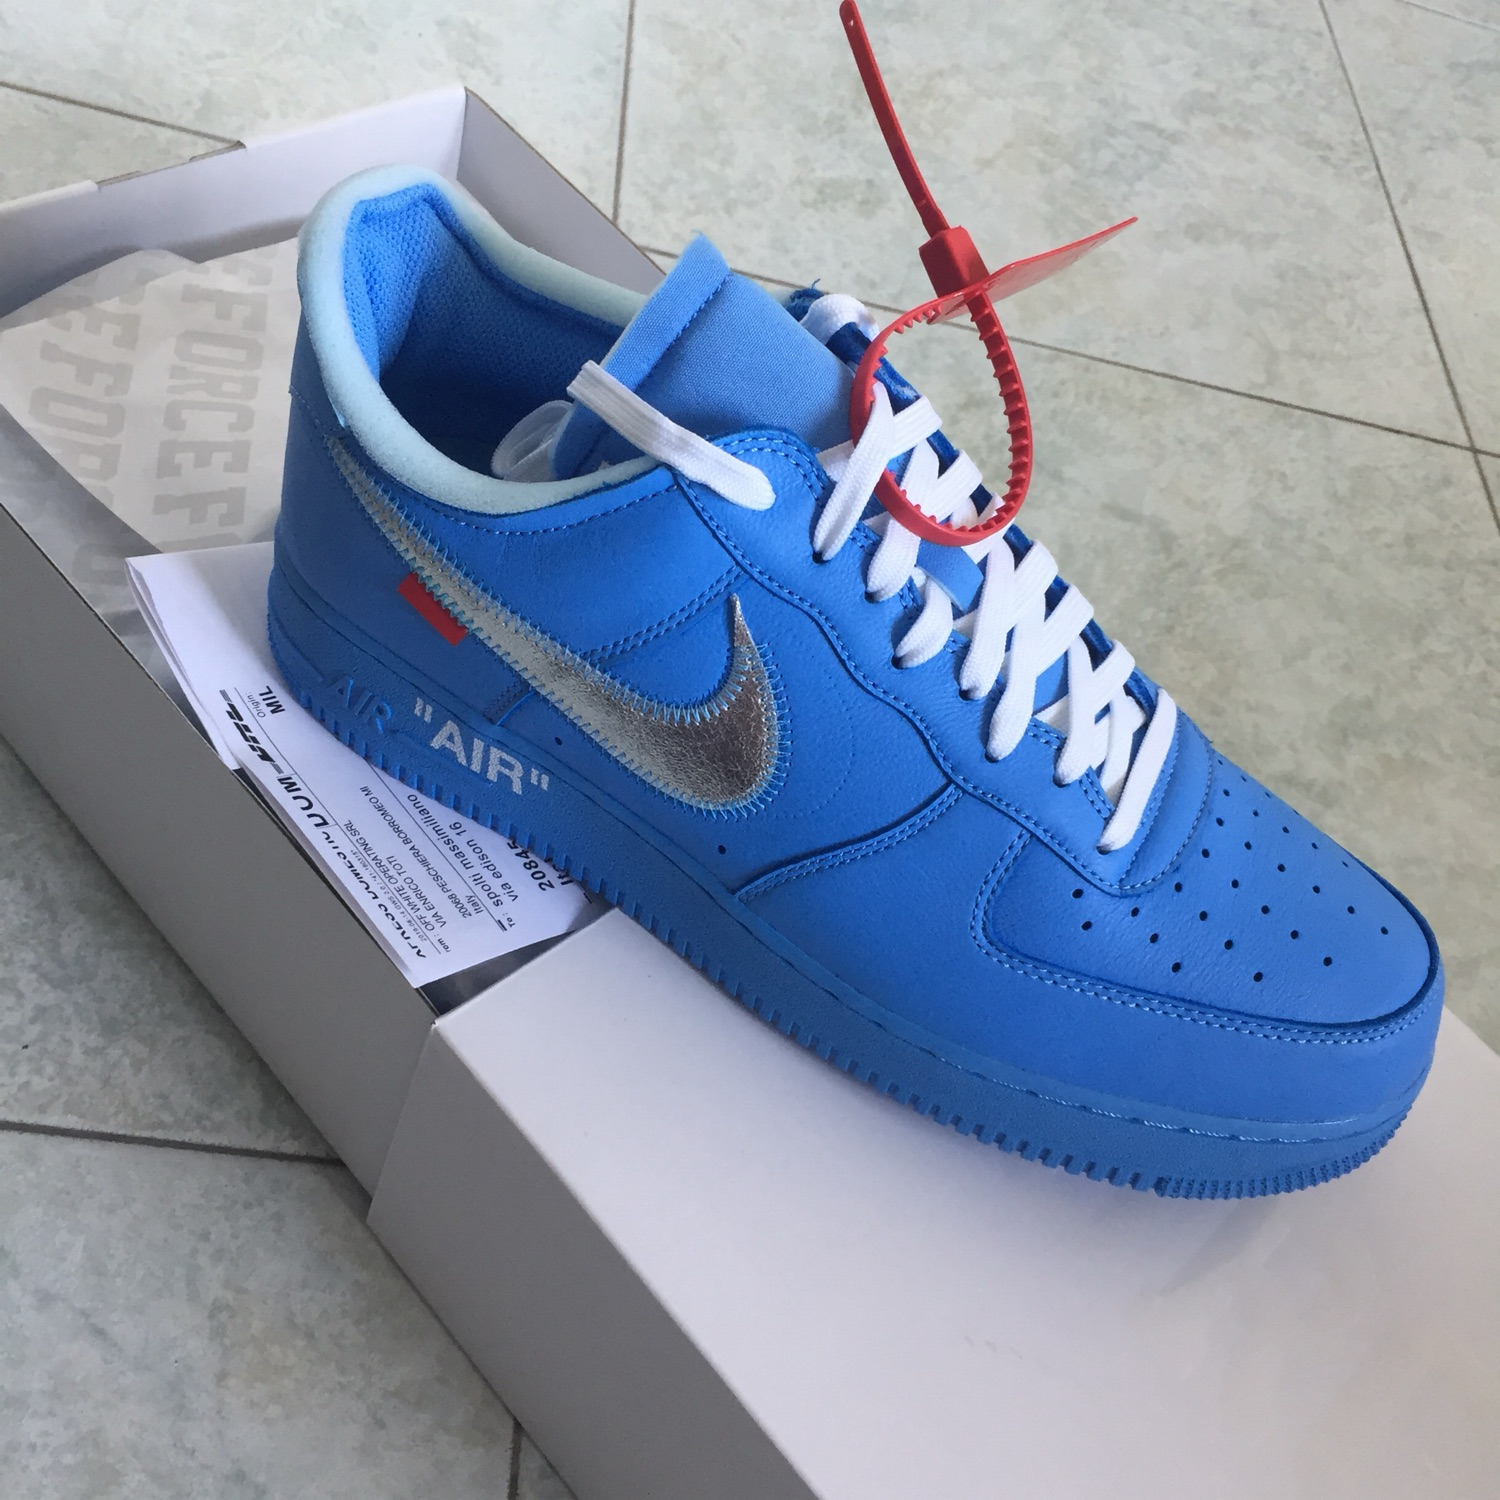 new arrival 8c64f ca086 Yeezy Nike Off White